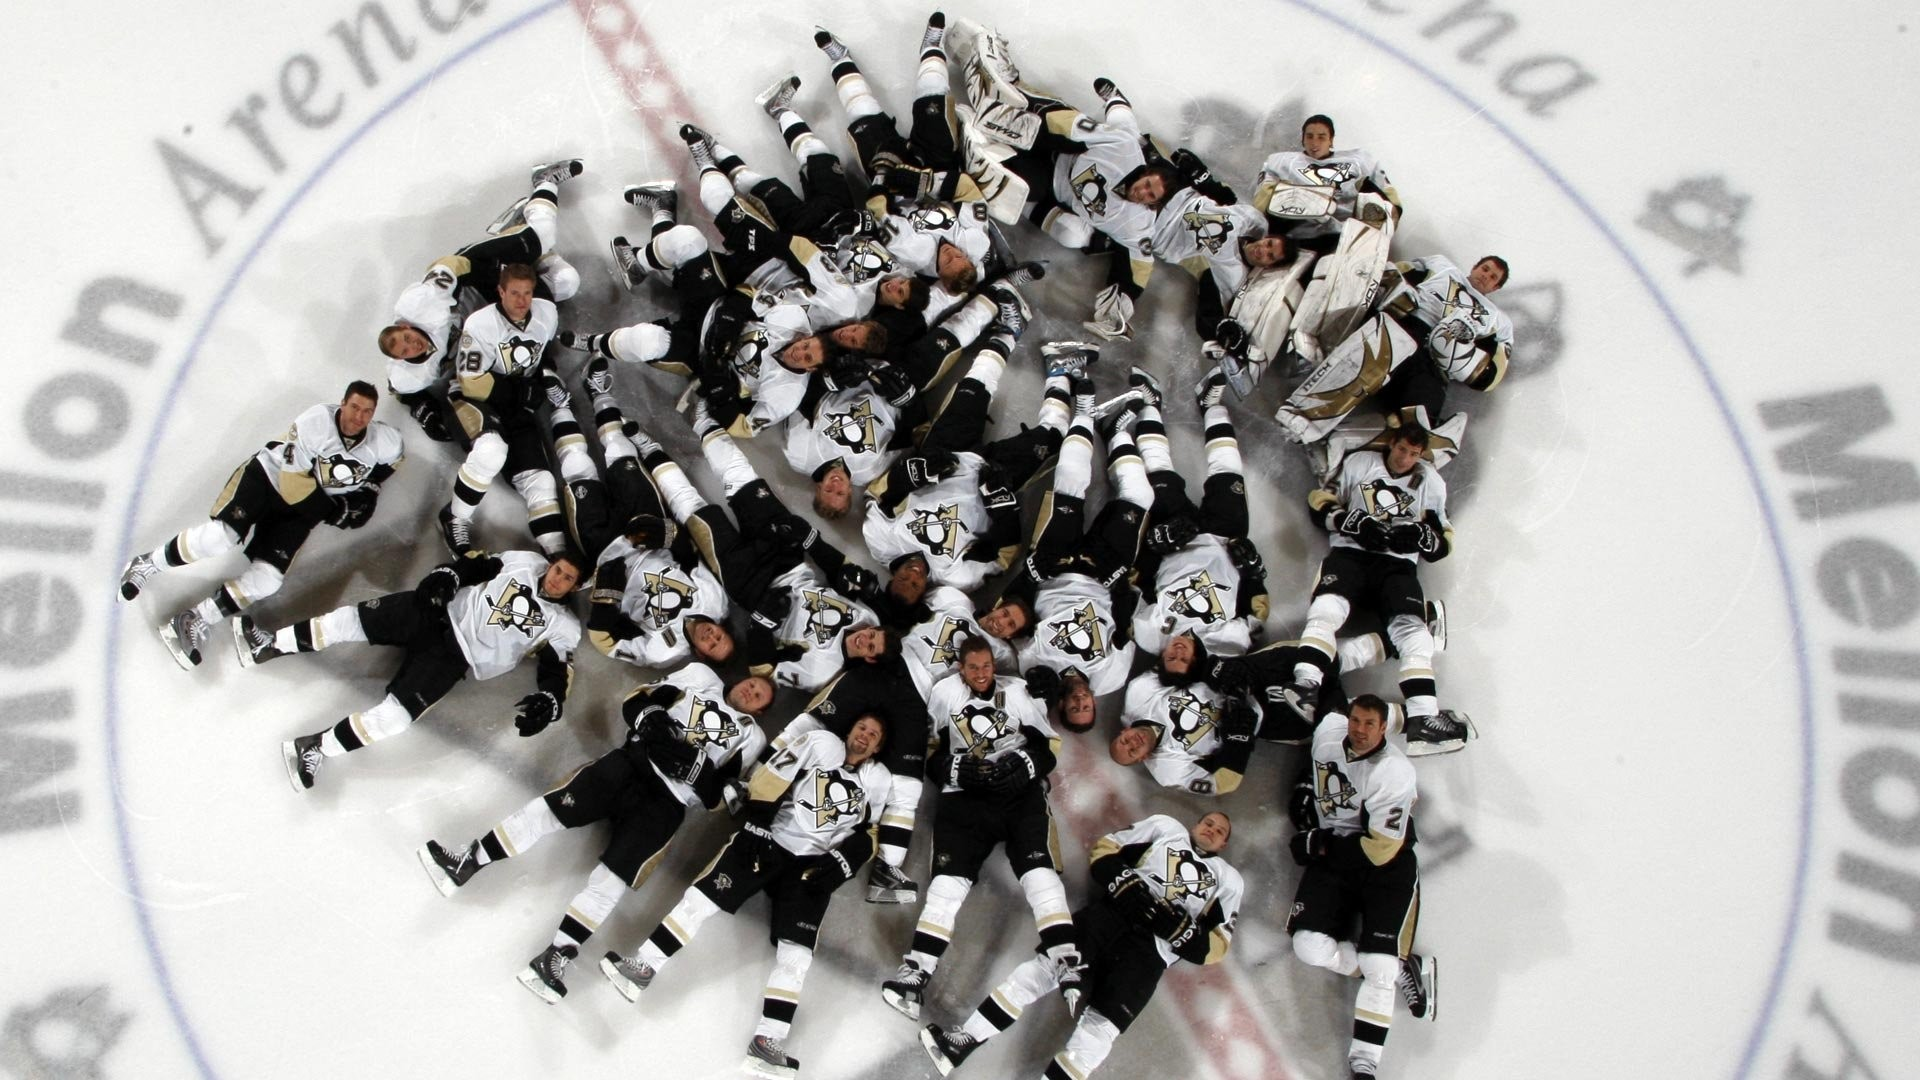 1920x1080 Pittsburgh Penguins 157449 ...